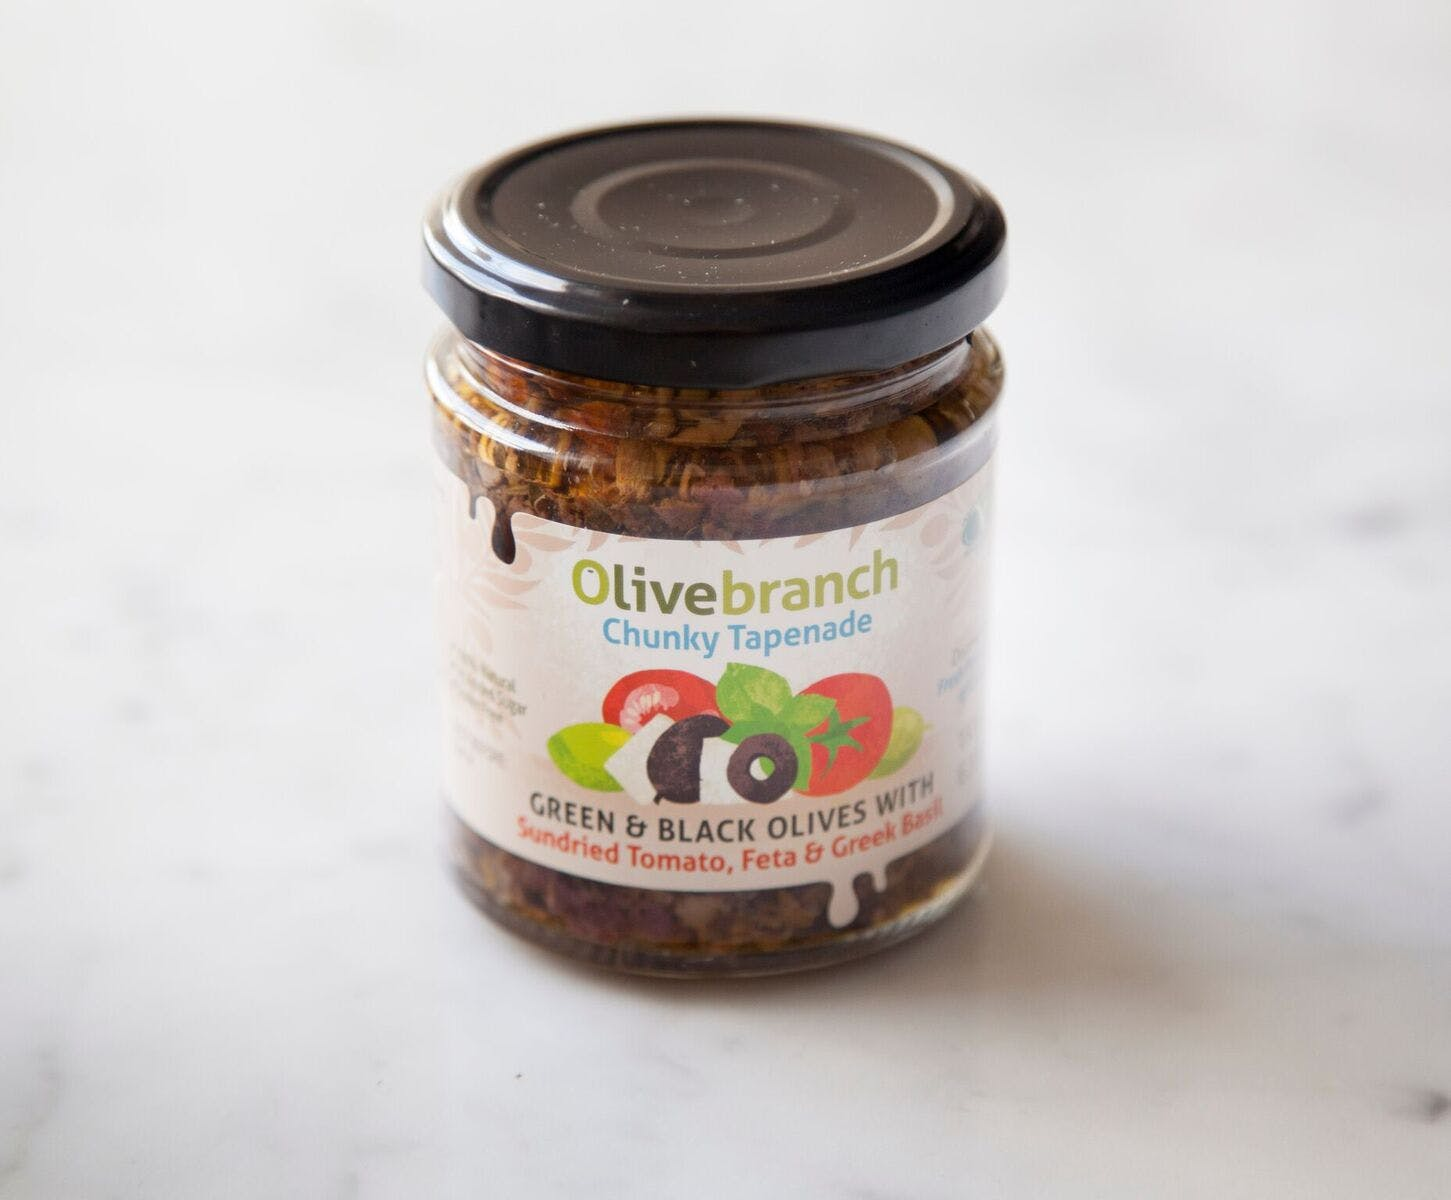 Chunky Tapenade (Green & Black Olives with Sundried Tomato, Feta & Greek Basil)